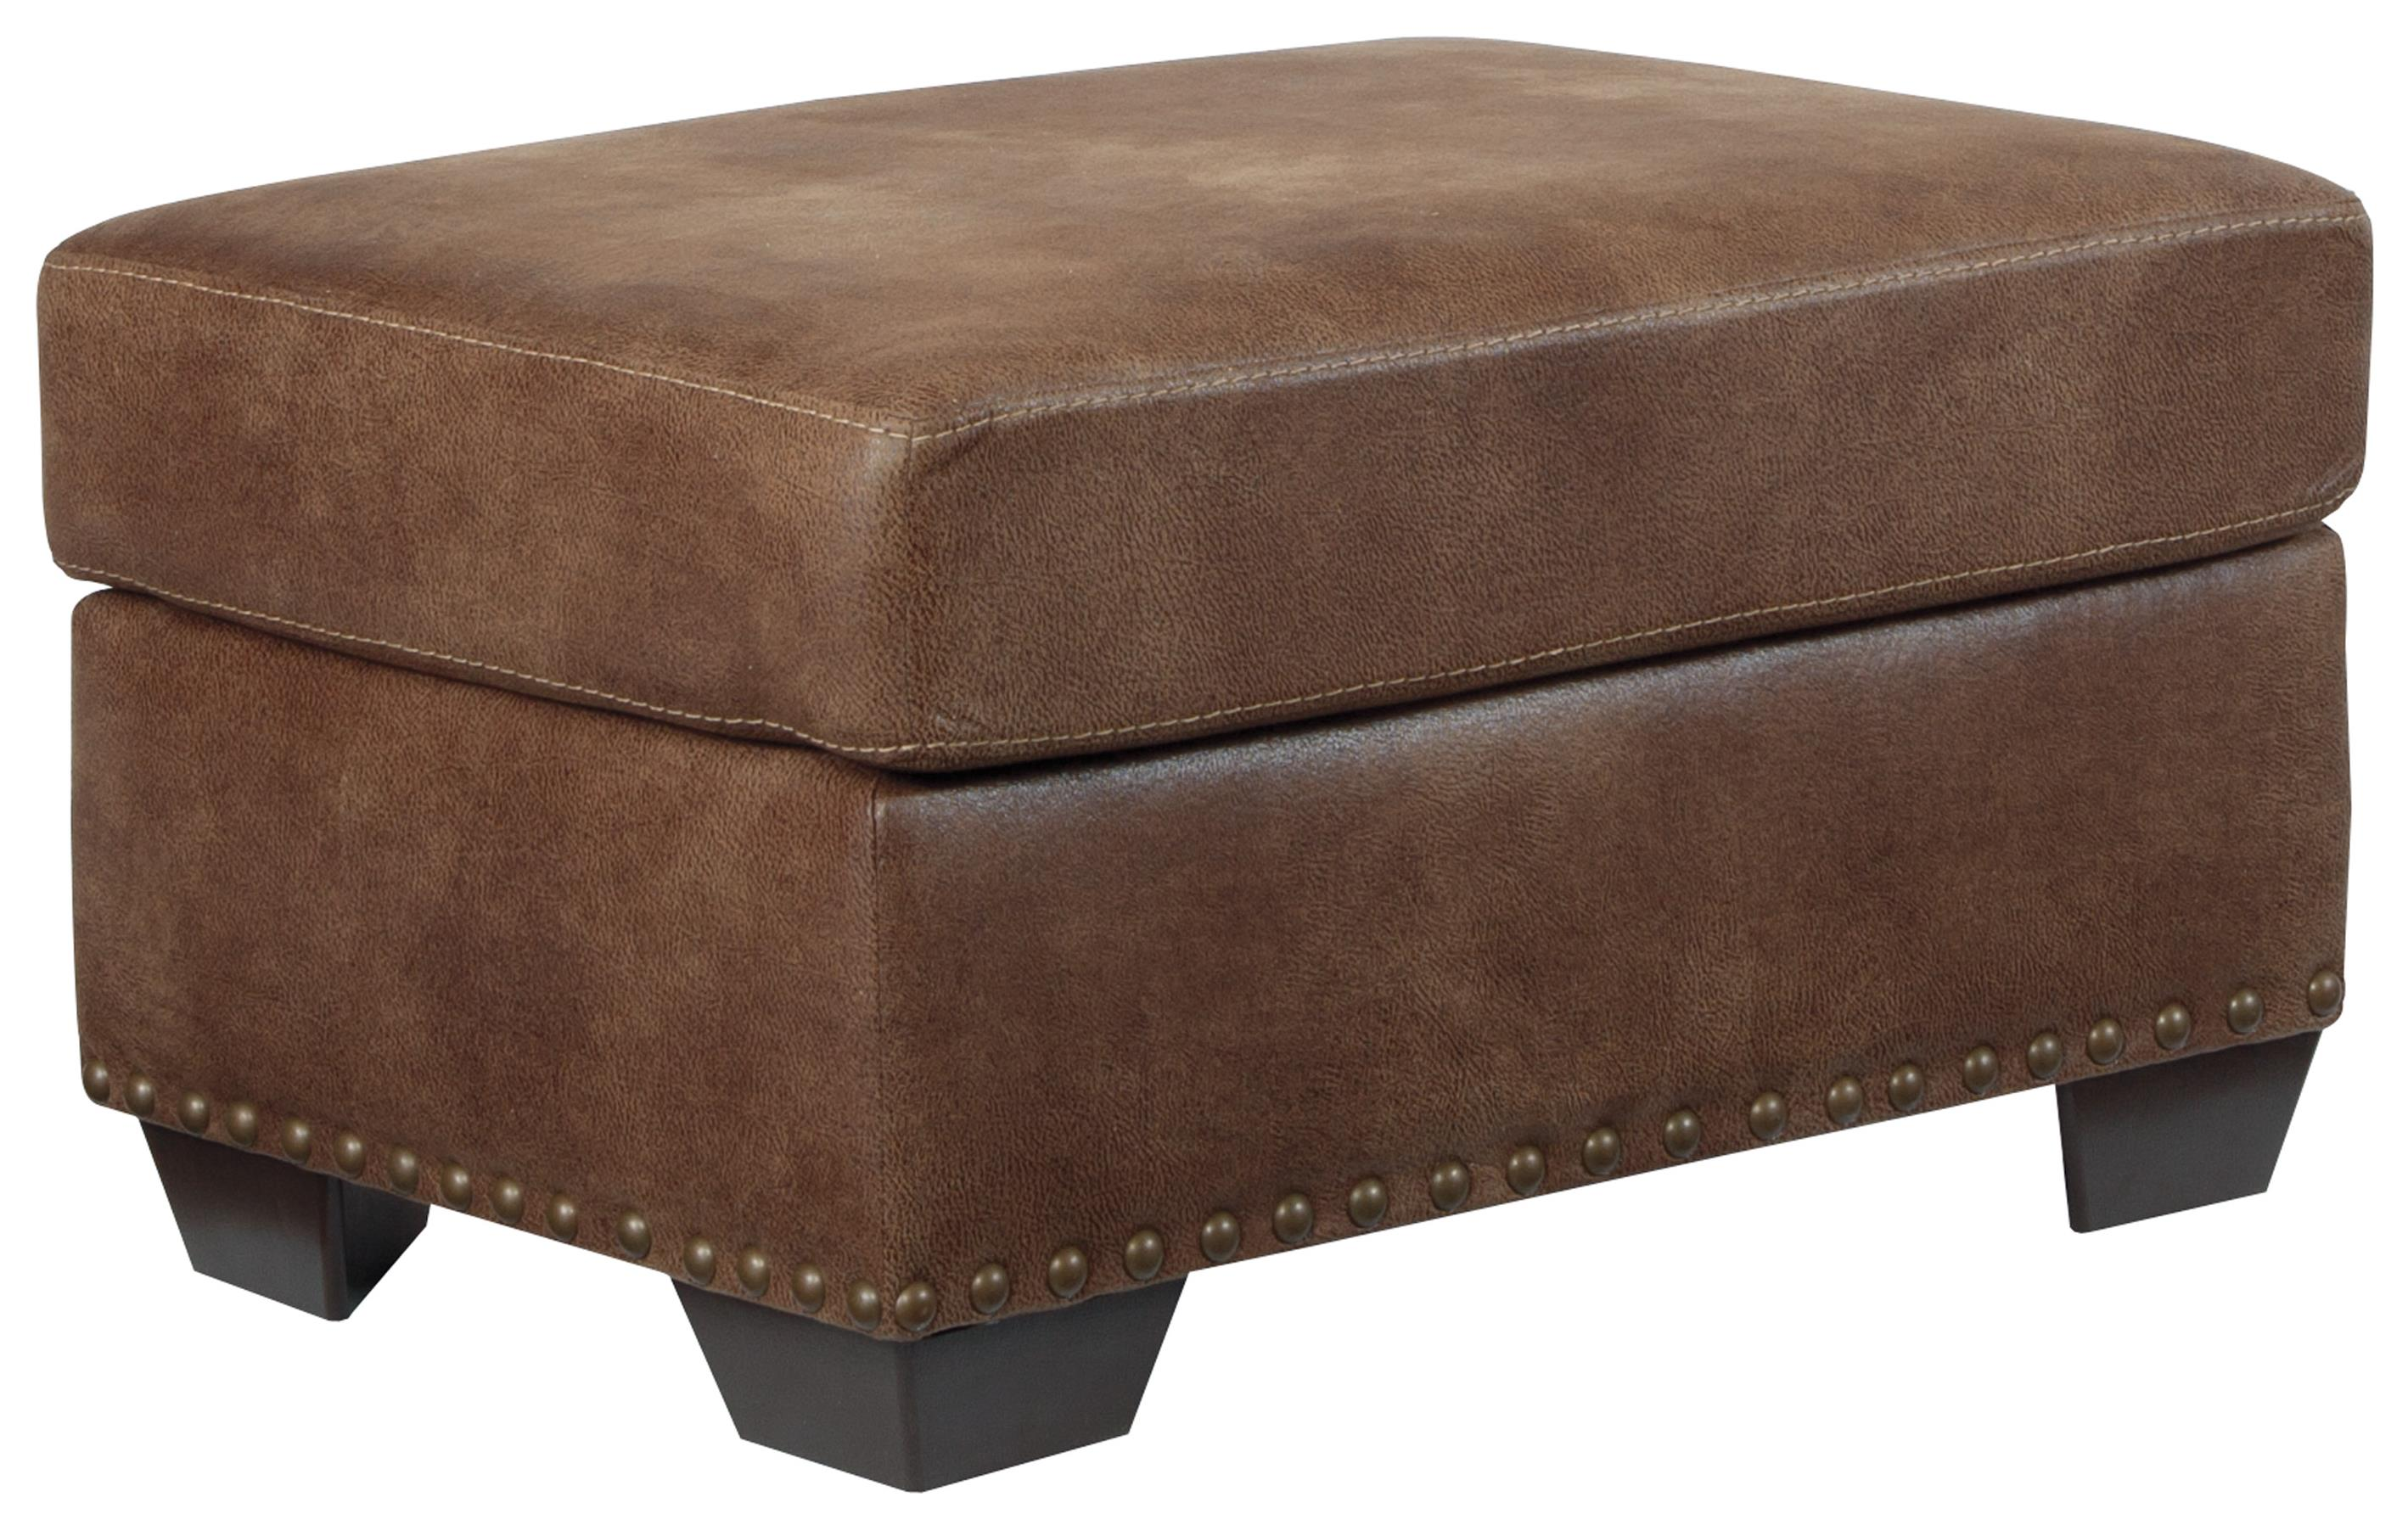 Ashley/Benchcraft Burnsville Ottoman - Item Number: 9720614